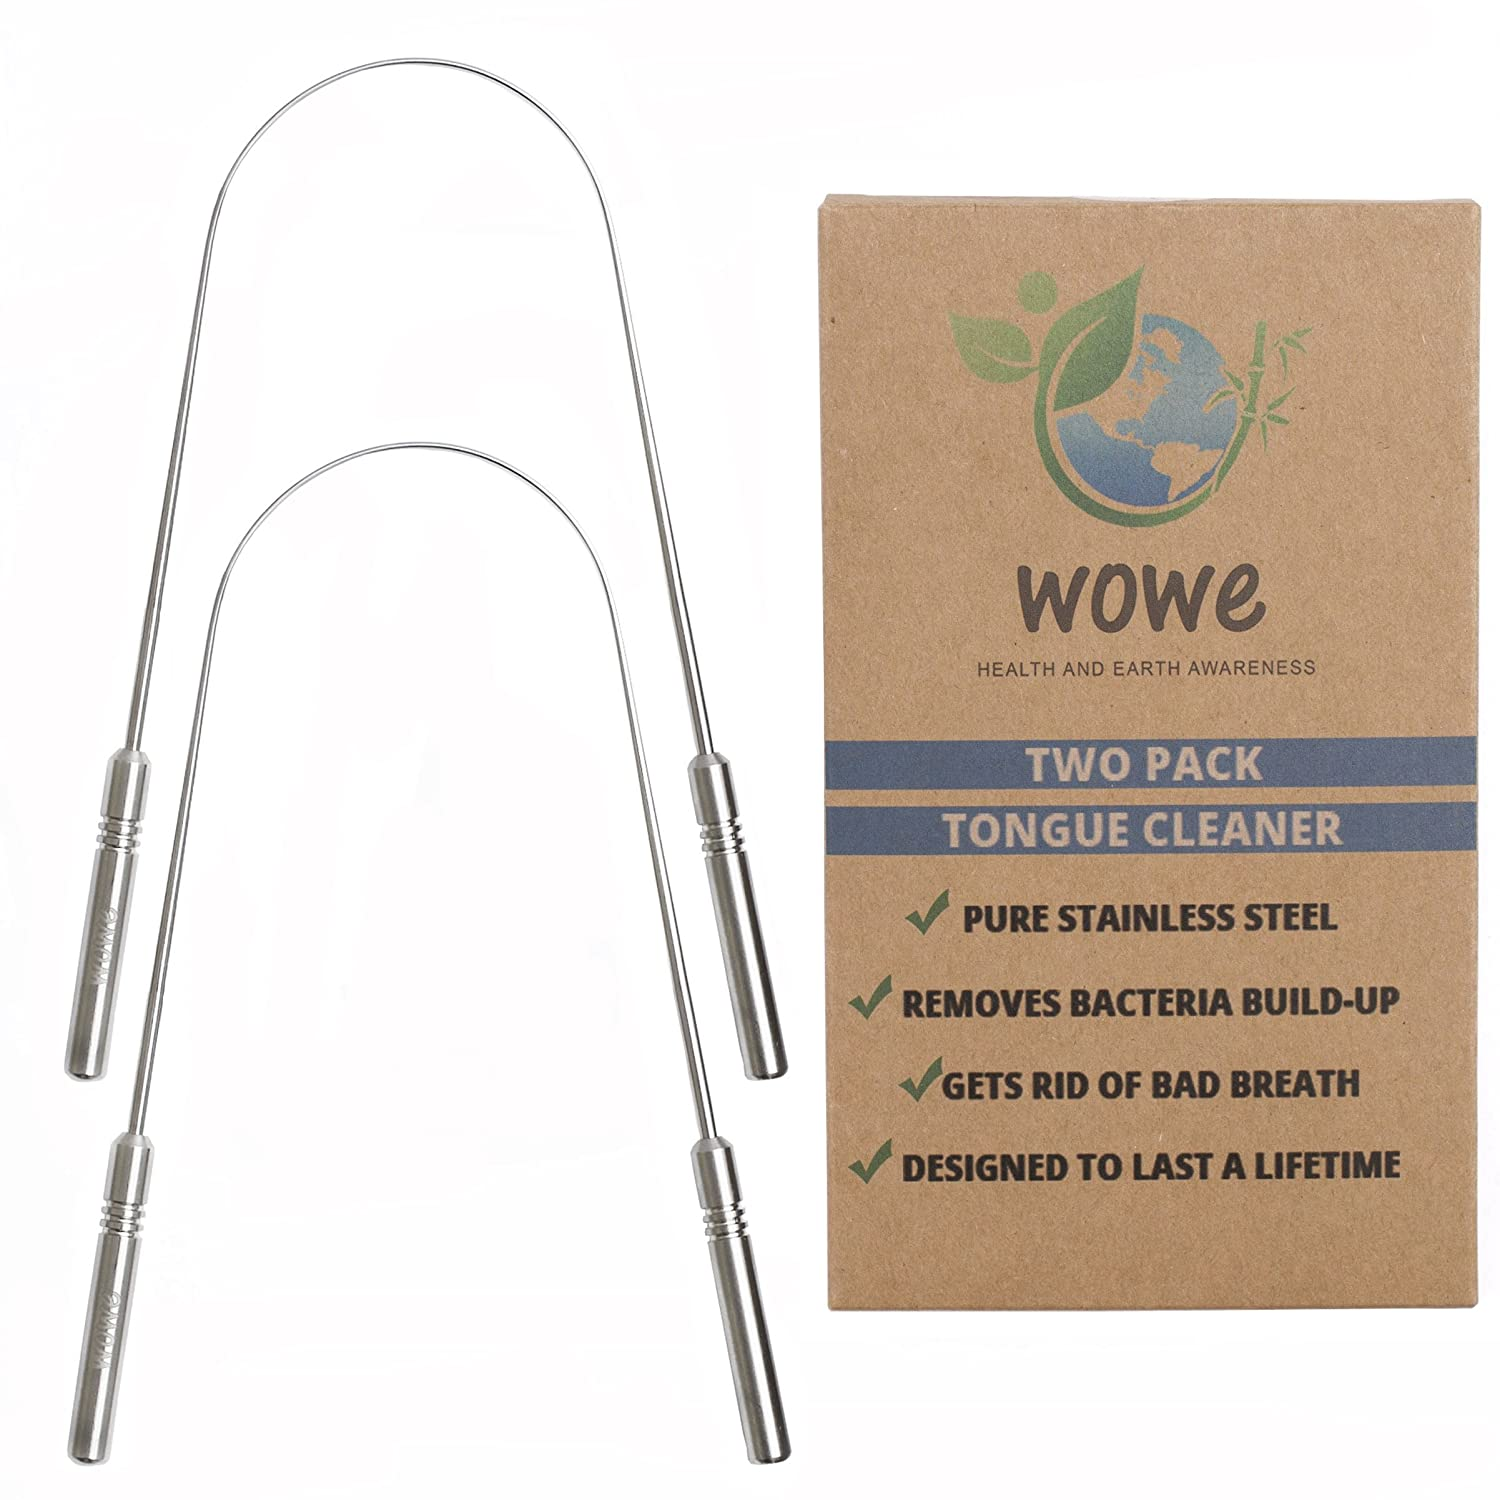 Tongue Cleaner Scraper - Surgical Grade Stainless Steel Metal - Get Rid of Bacteria and Bad Breath - Two Pack by WowE LifeStyle Products